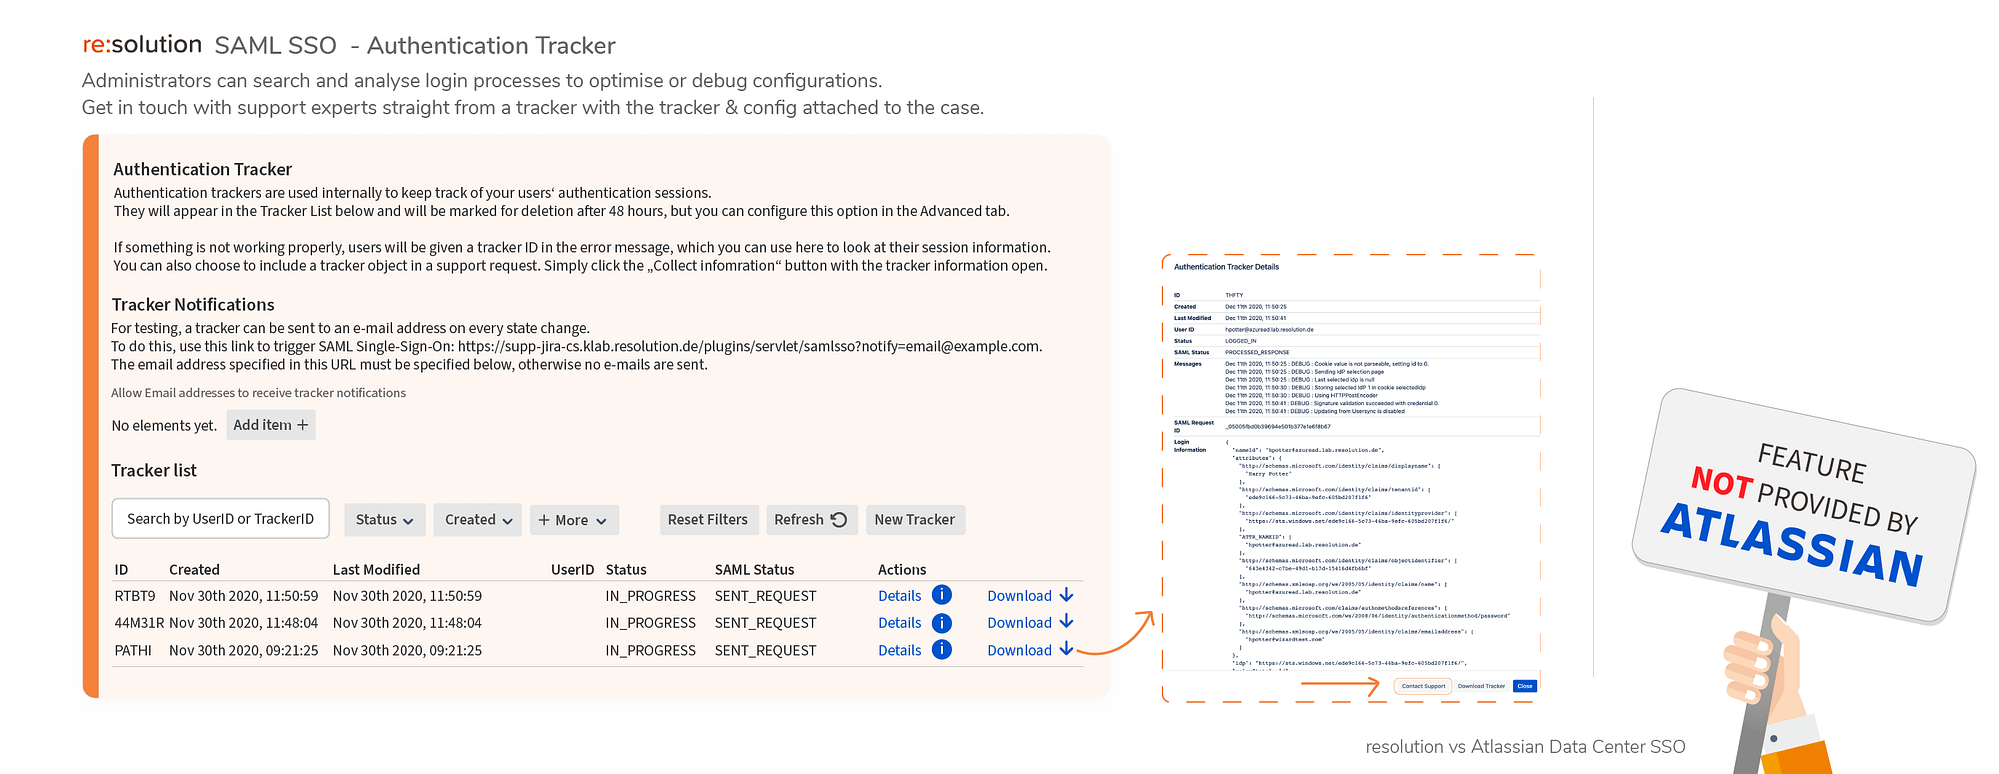 Authentication Tracker